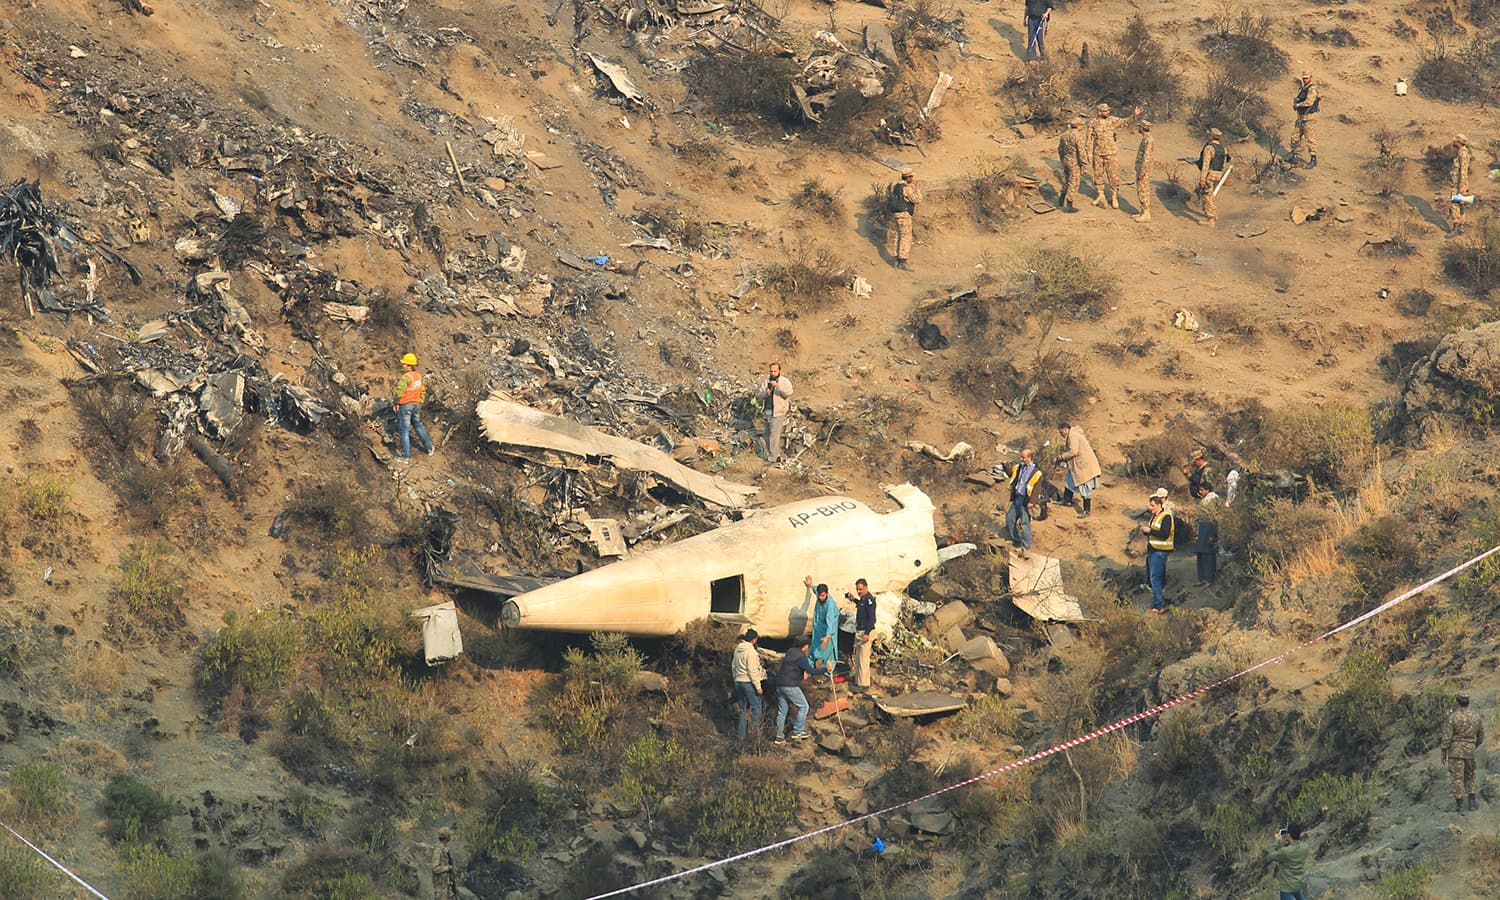 Rescue workers survey the site of the plane crash. ─Reuters